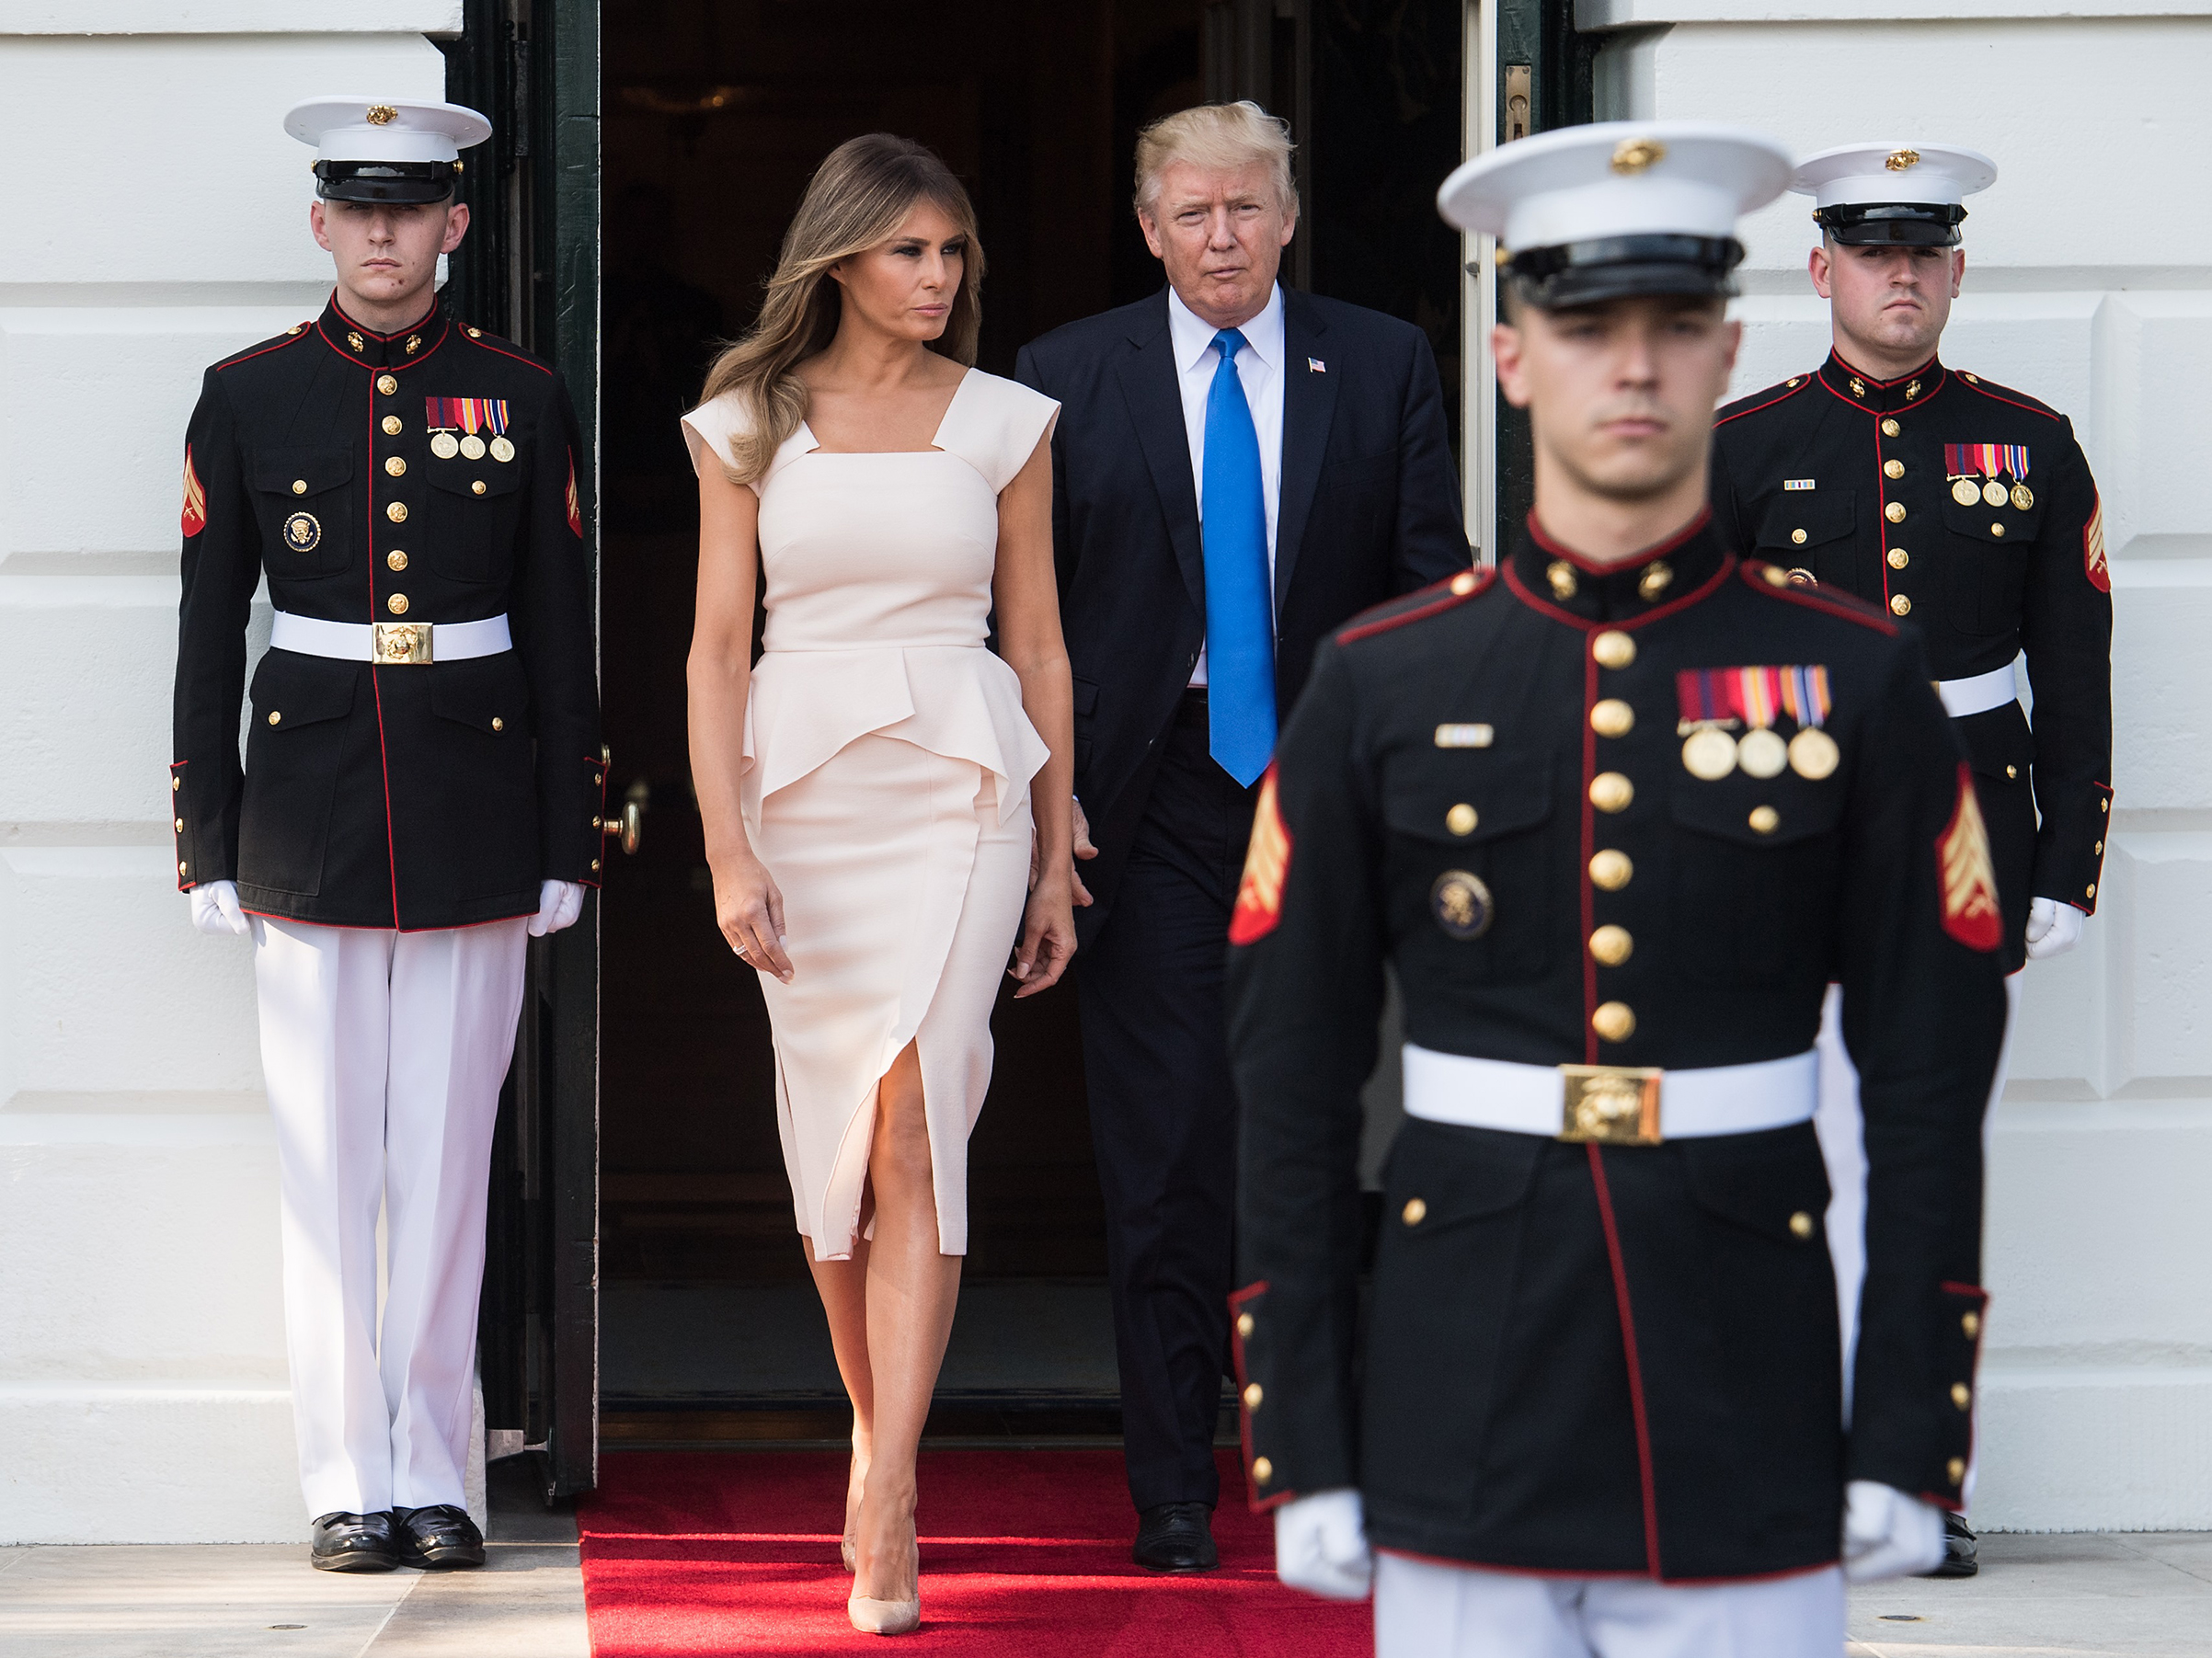 President Donald Trump and first lady Melania Trump wearing a Roland Mouret dress and Christian Louboutin shoes, walk out to receive South Korean President Moon Jae-in and his wife Kim Jeong-suk at the White House in Washington, D.C., on June 29, 2017.